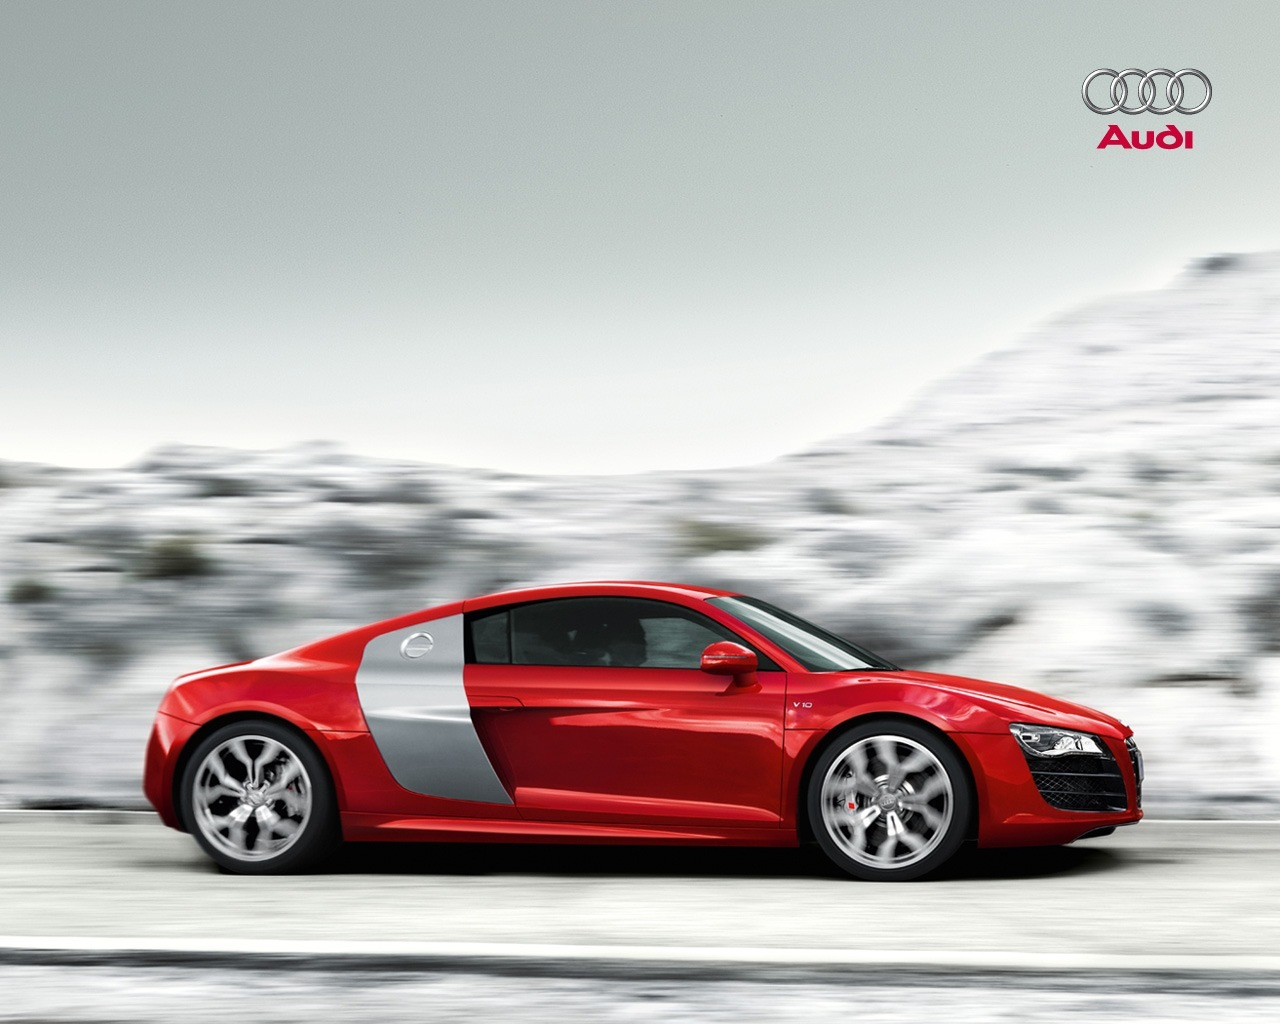 audi r8 v10 wallpaper wallpapersskin 1280x1024